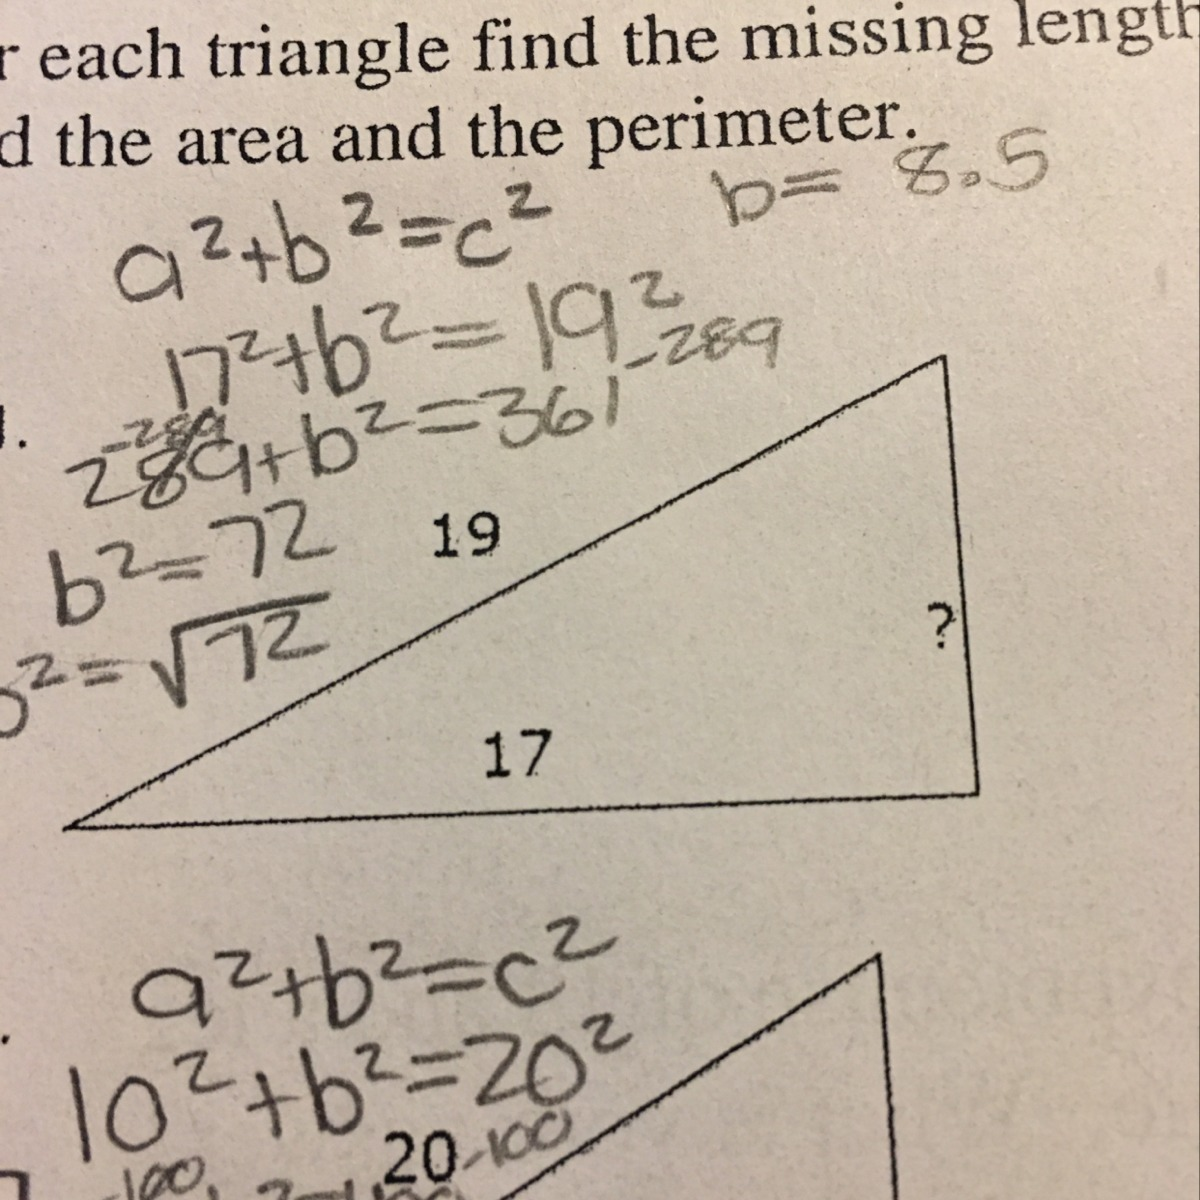 Find The Area And Perimeter Of The Triangle In The Picture